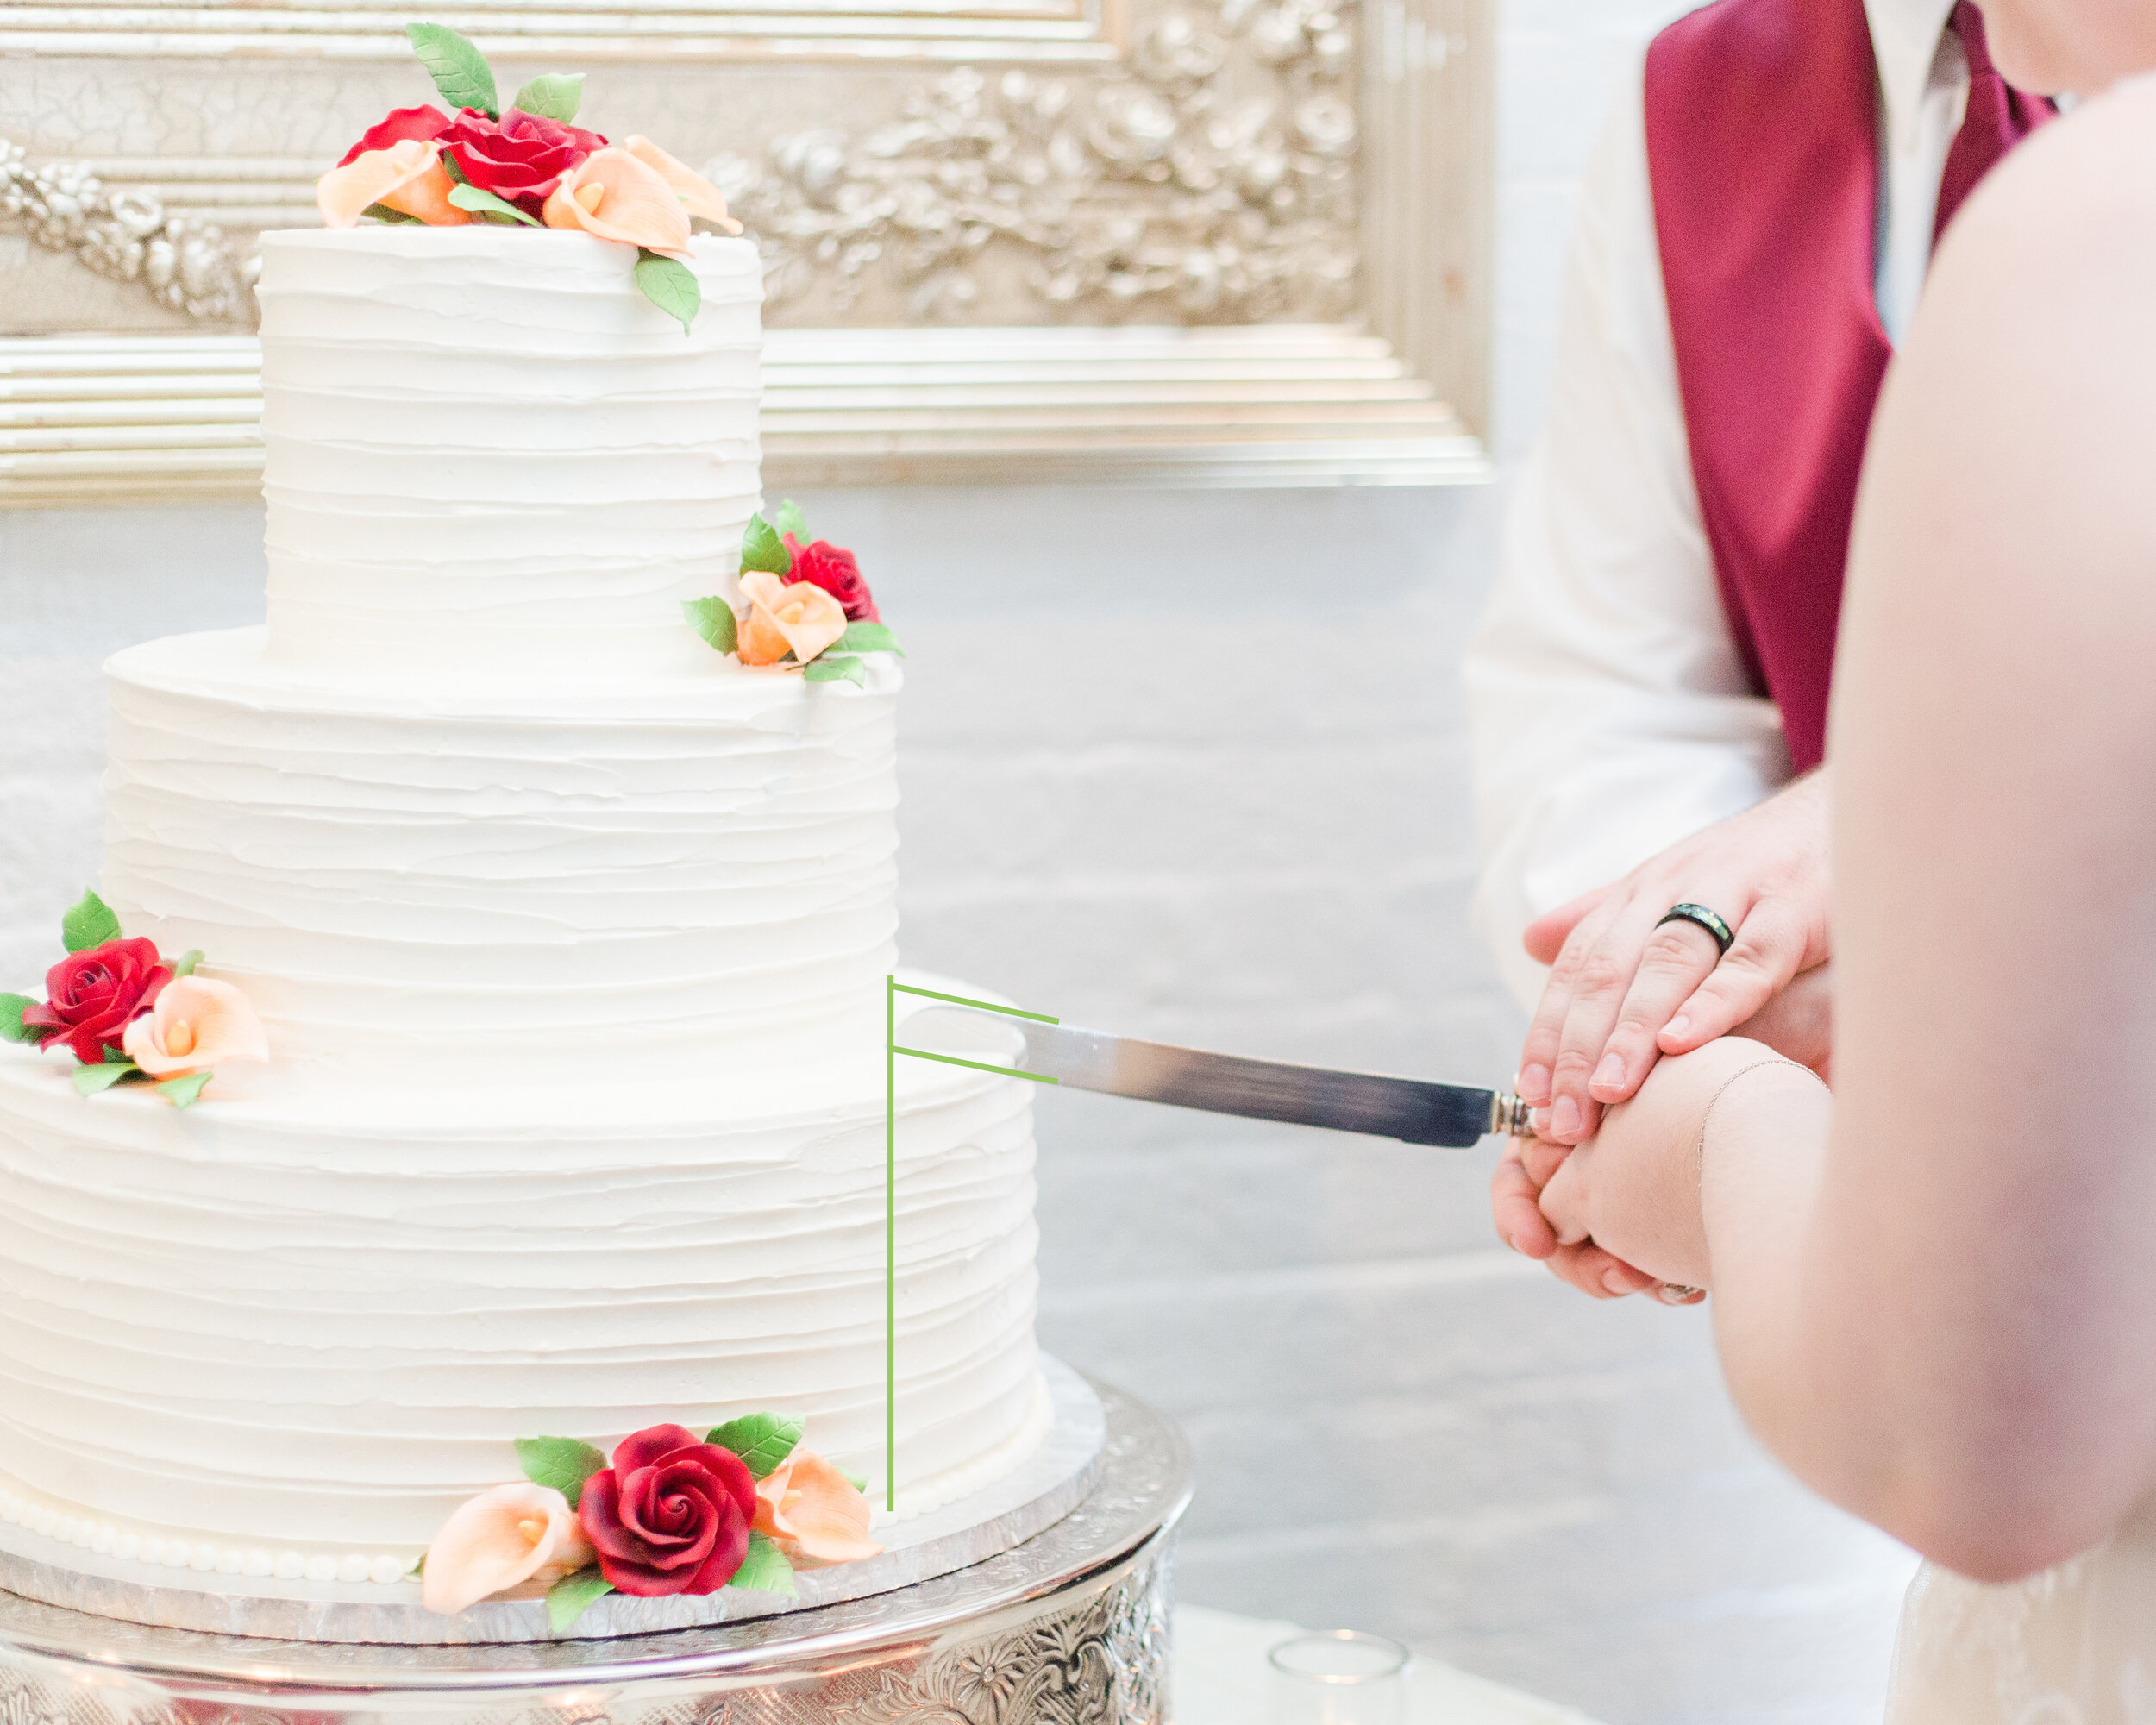 HOW-TO-CUT-YOUR-WEDDING-CAKE (2 of 9).jpg